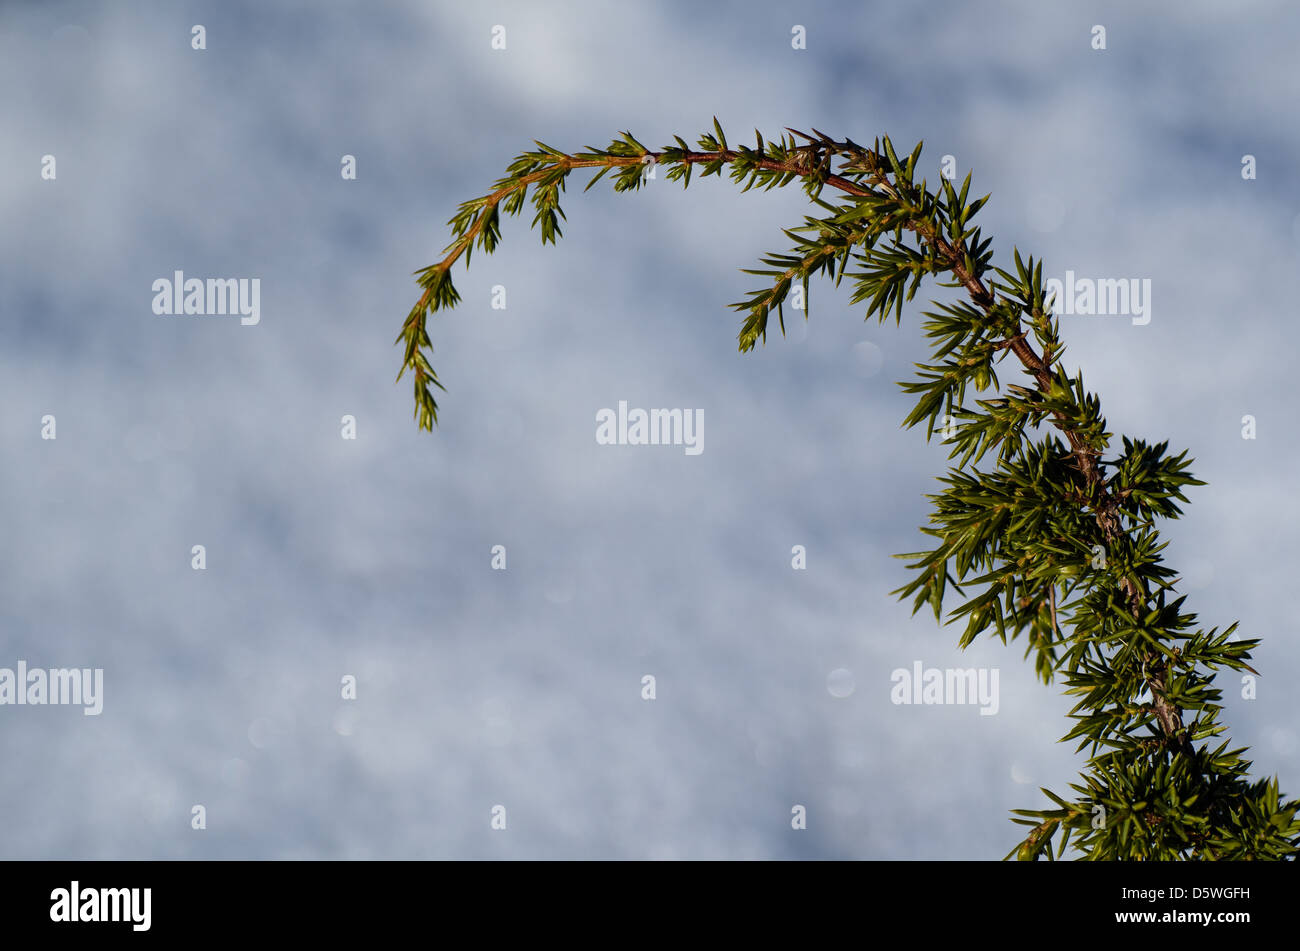 Fresh juniper twig at a blue and white background - Stock Image